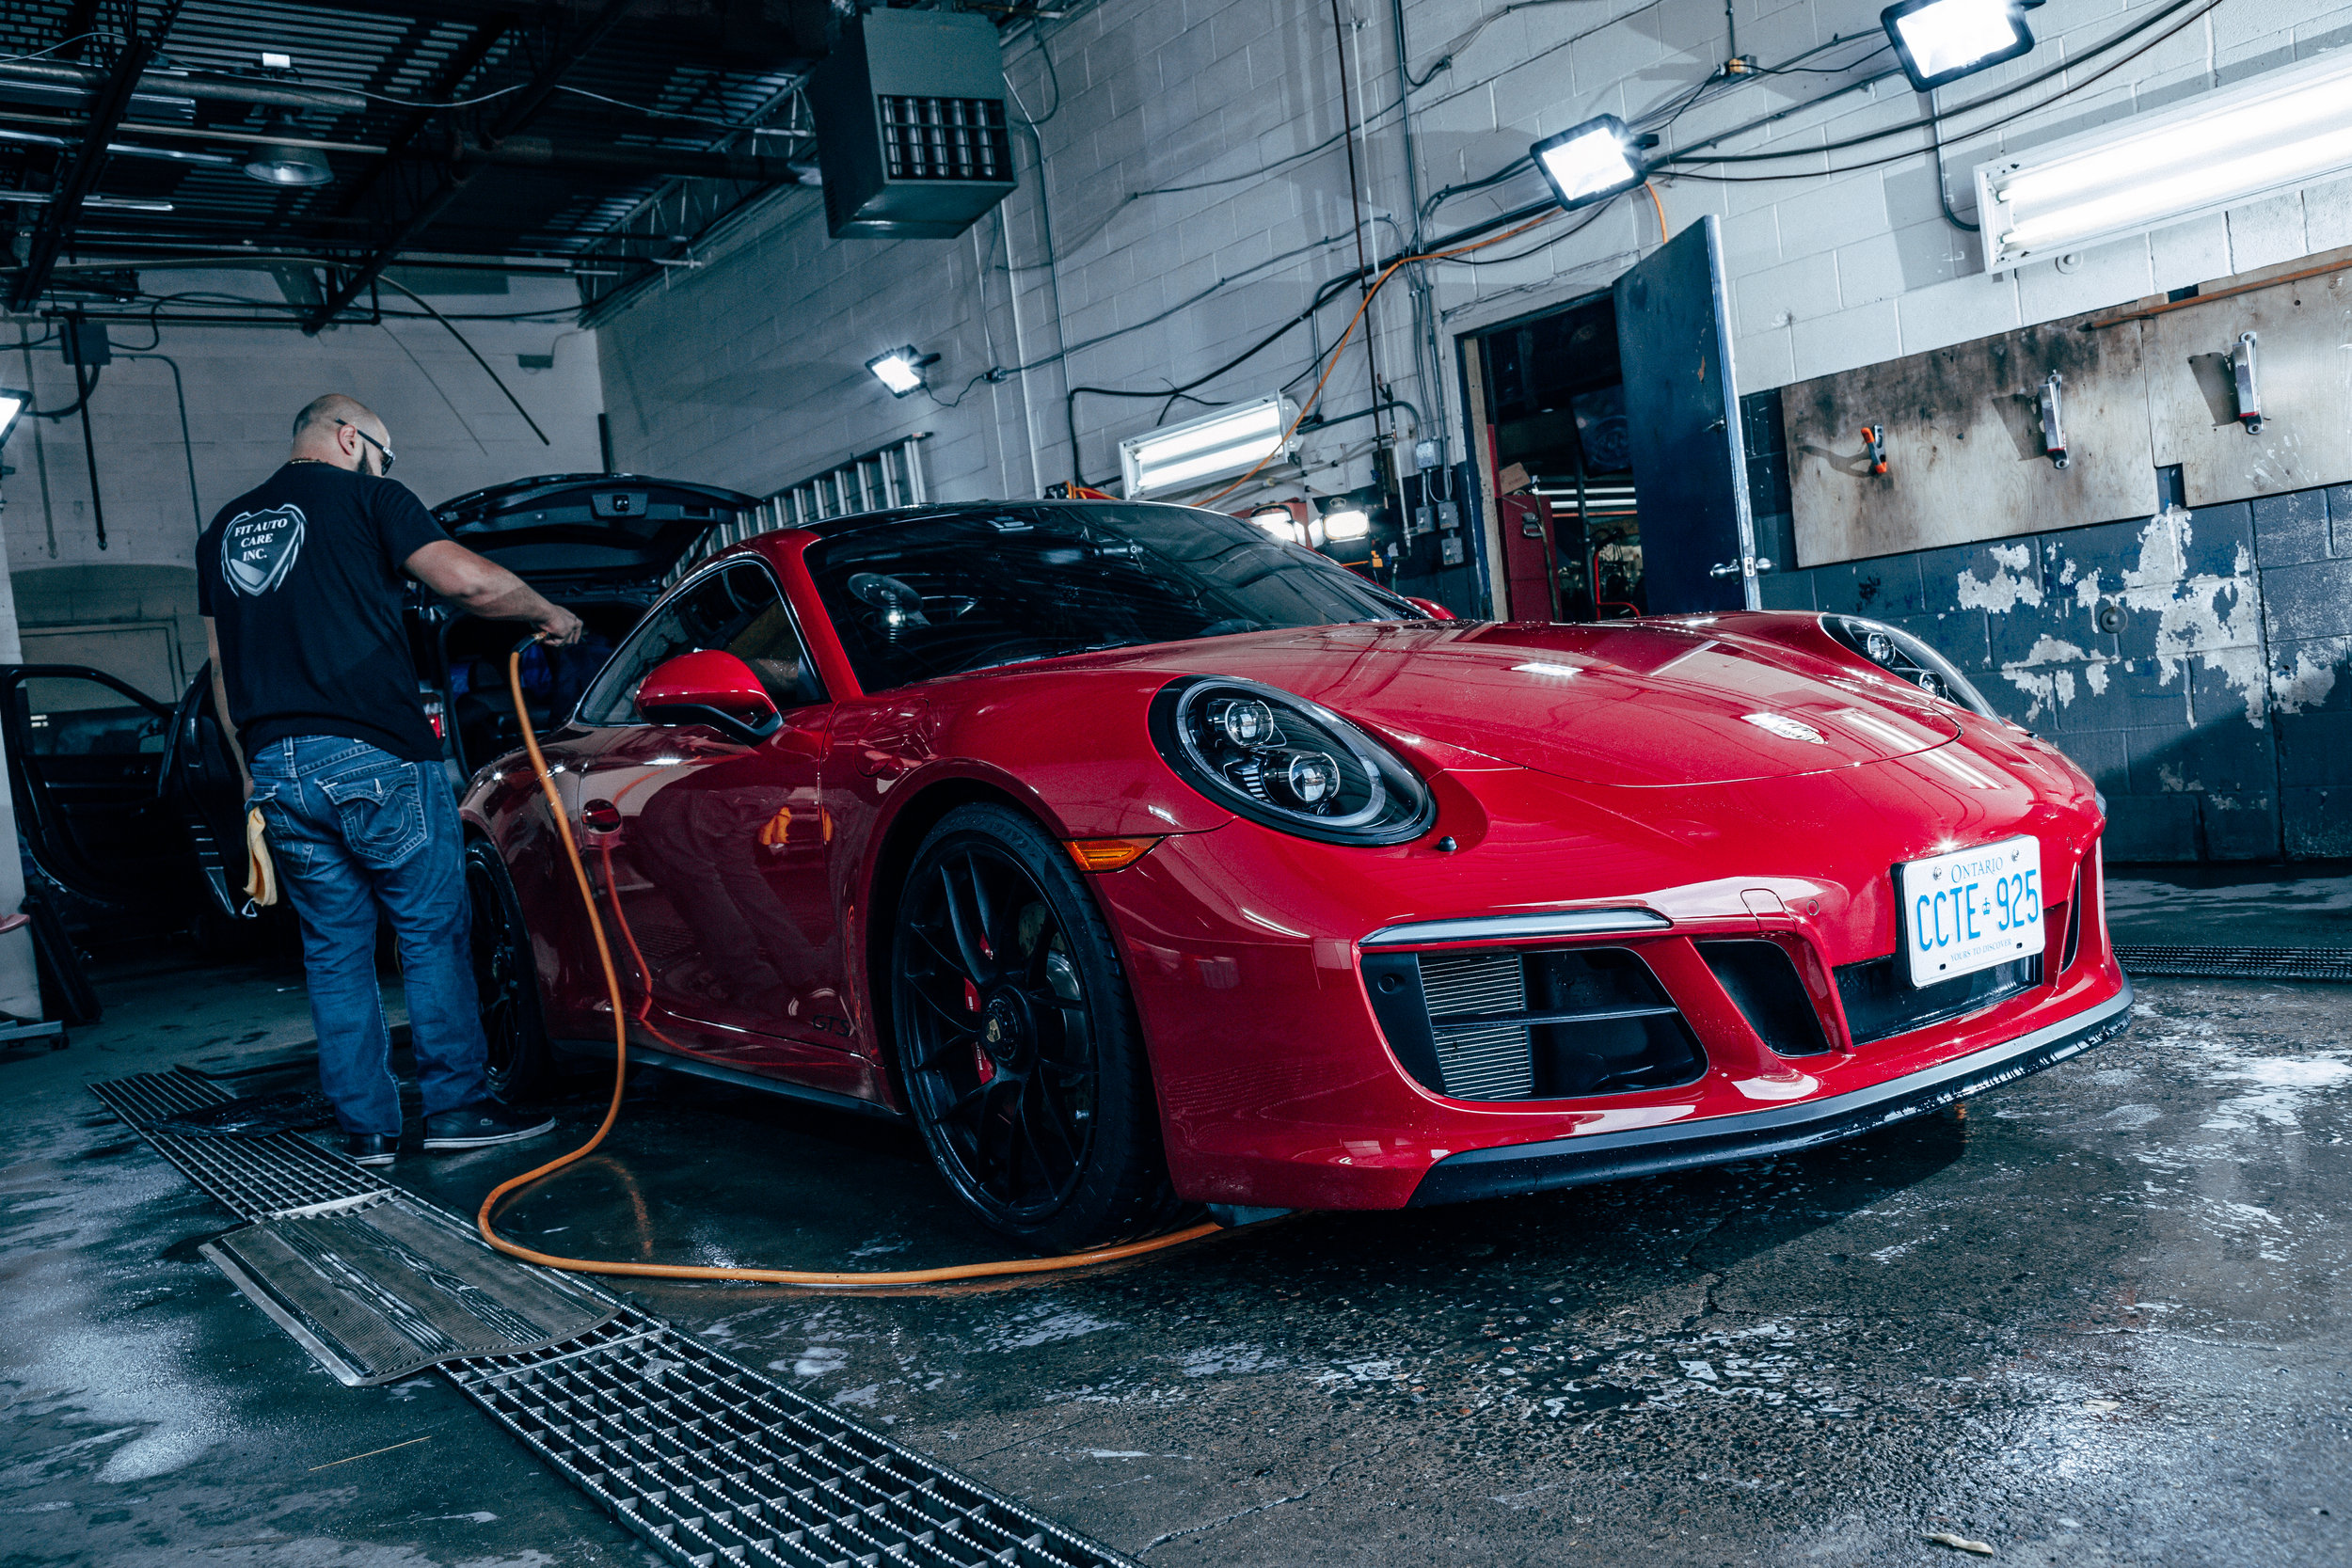 911 being detailed before ceramic coating